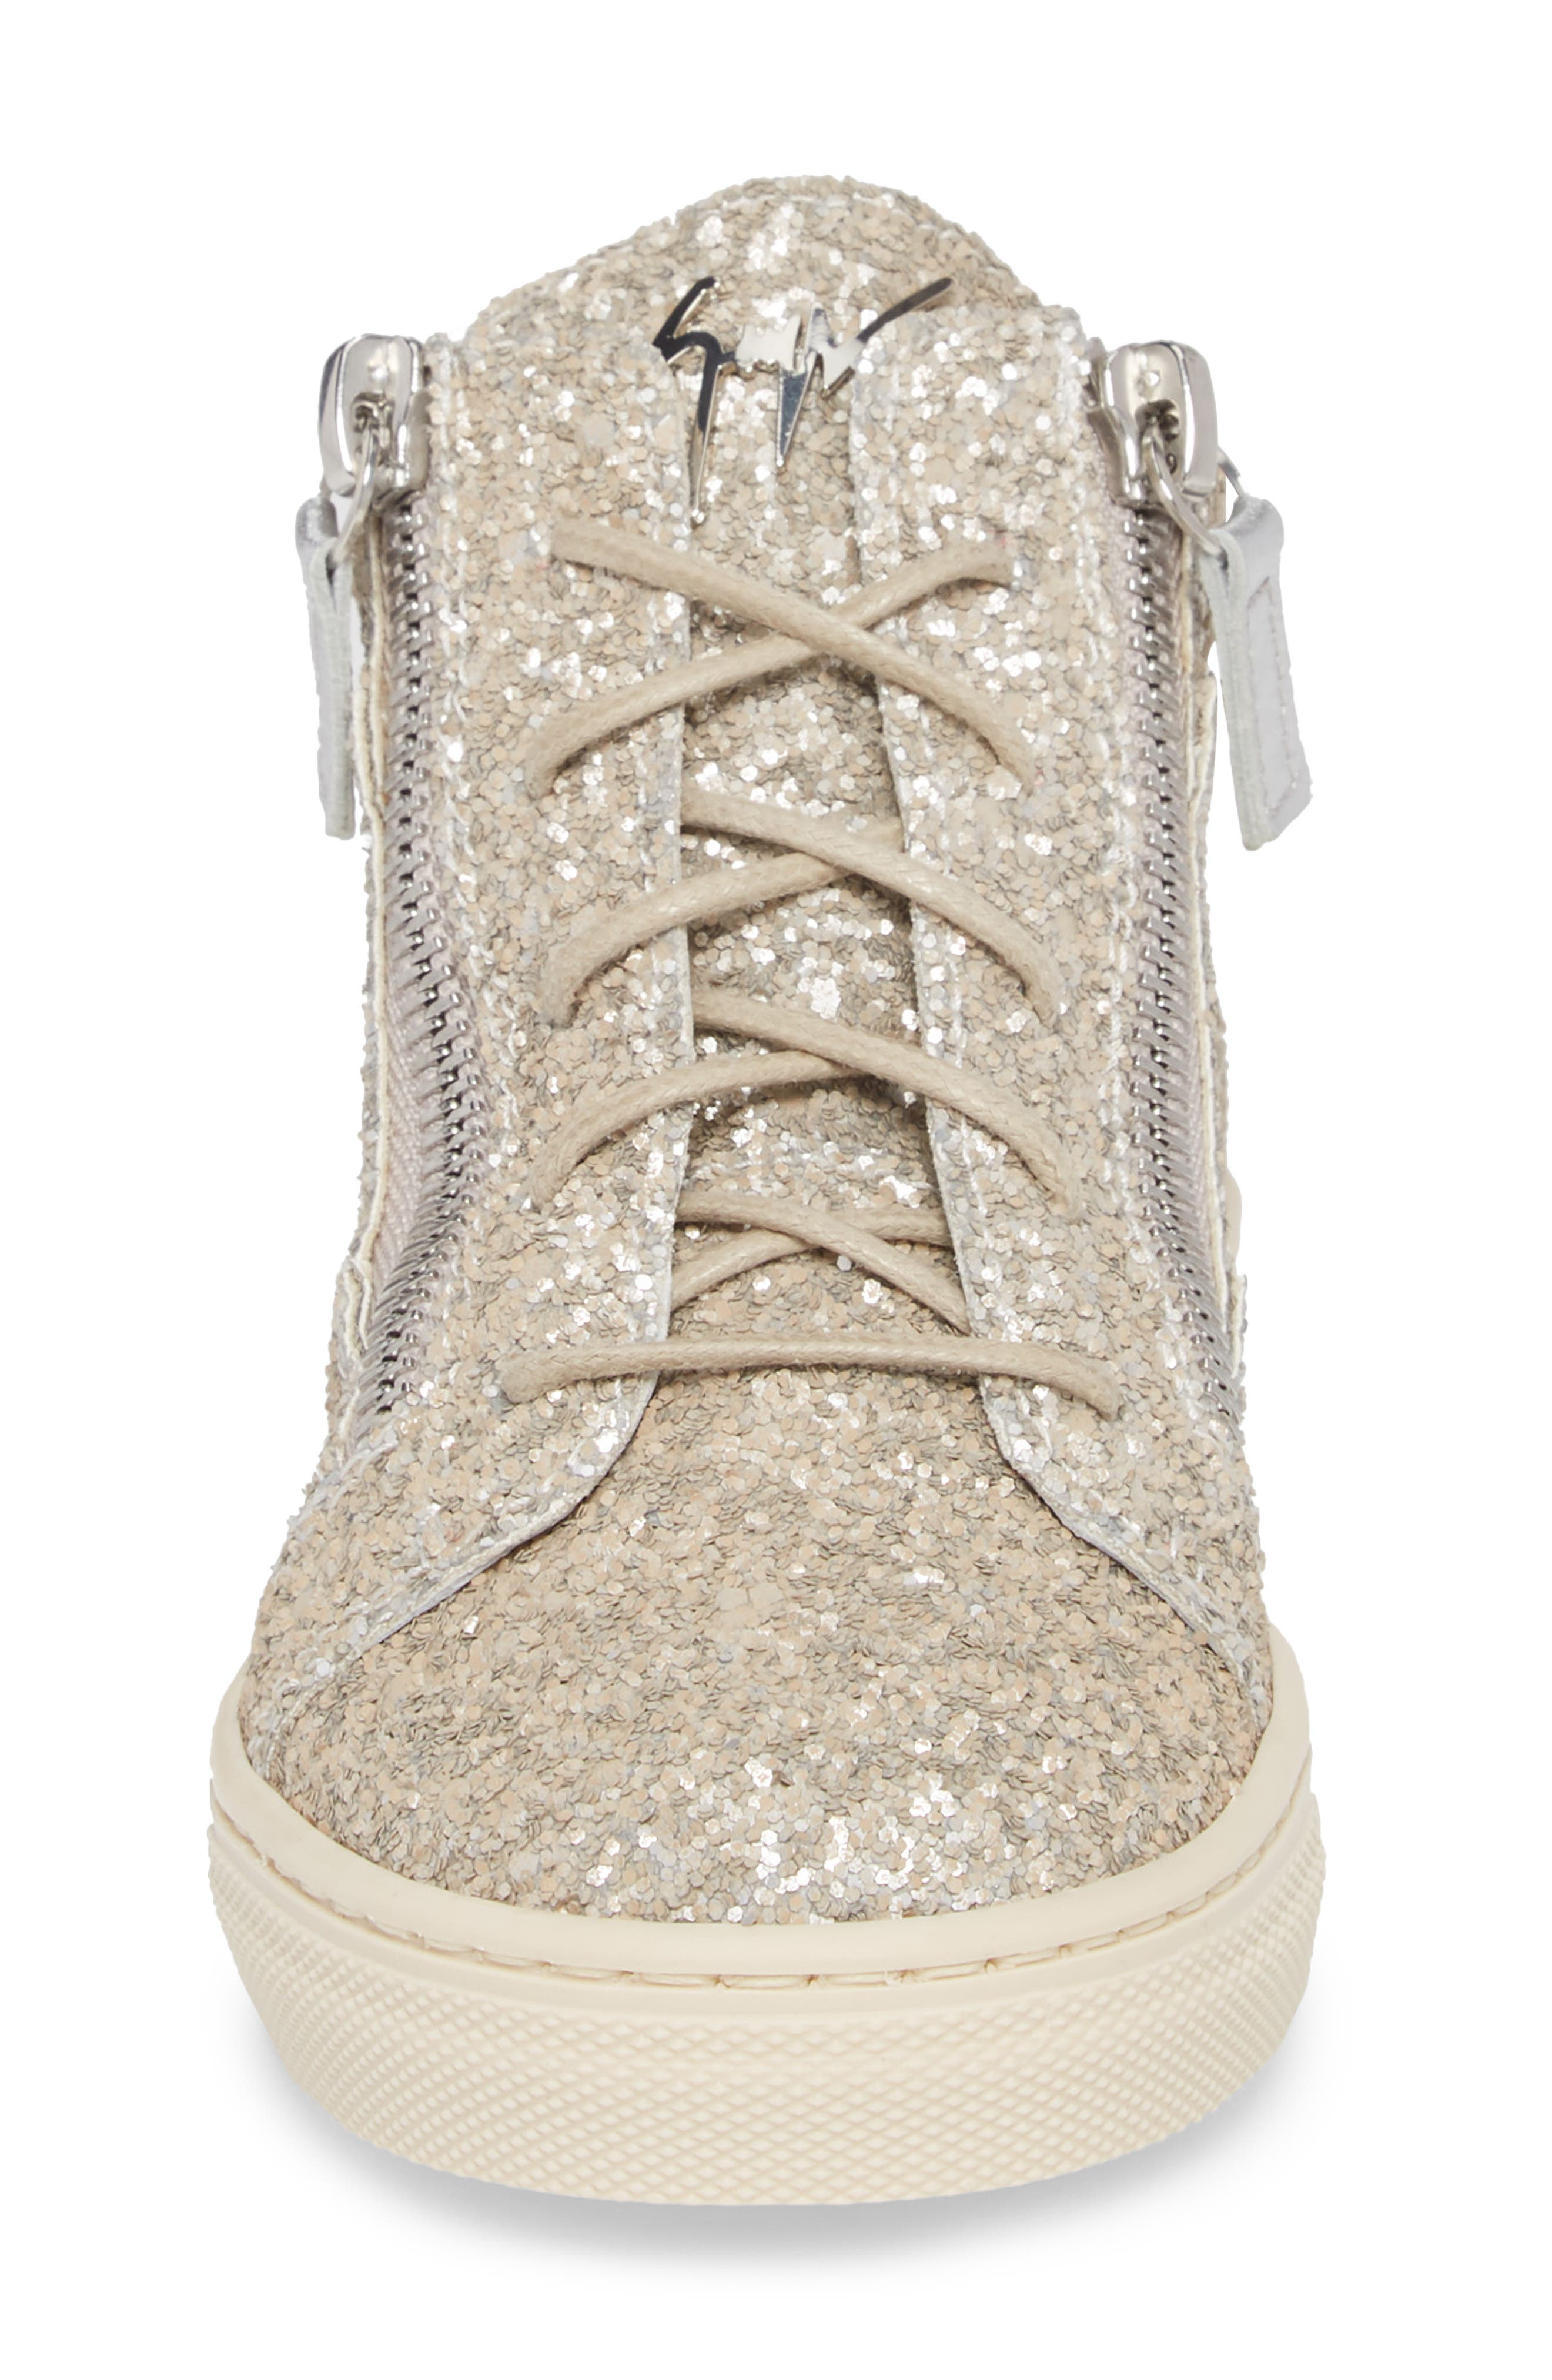 Natalie High Top Sneaker,                             Alternate thumbnail 4, color,                             Silver Glitter